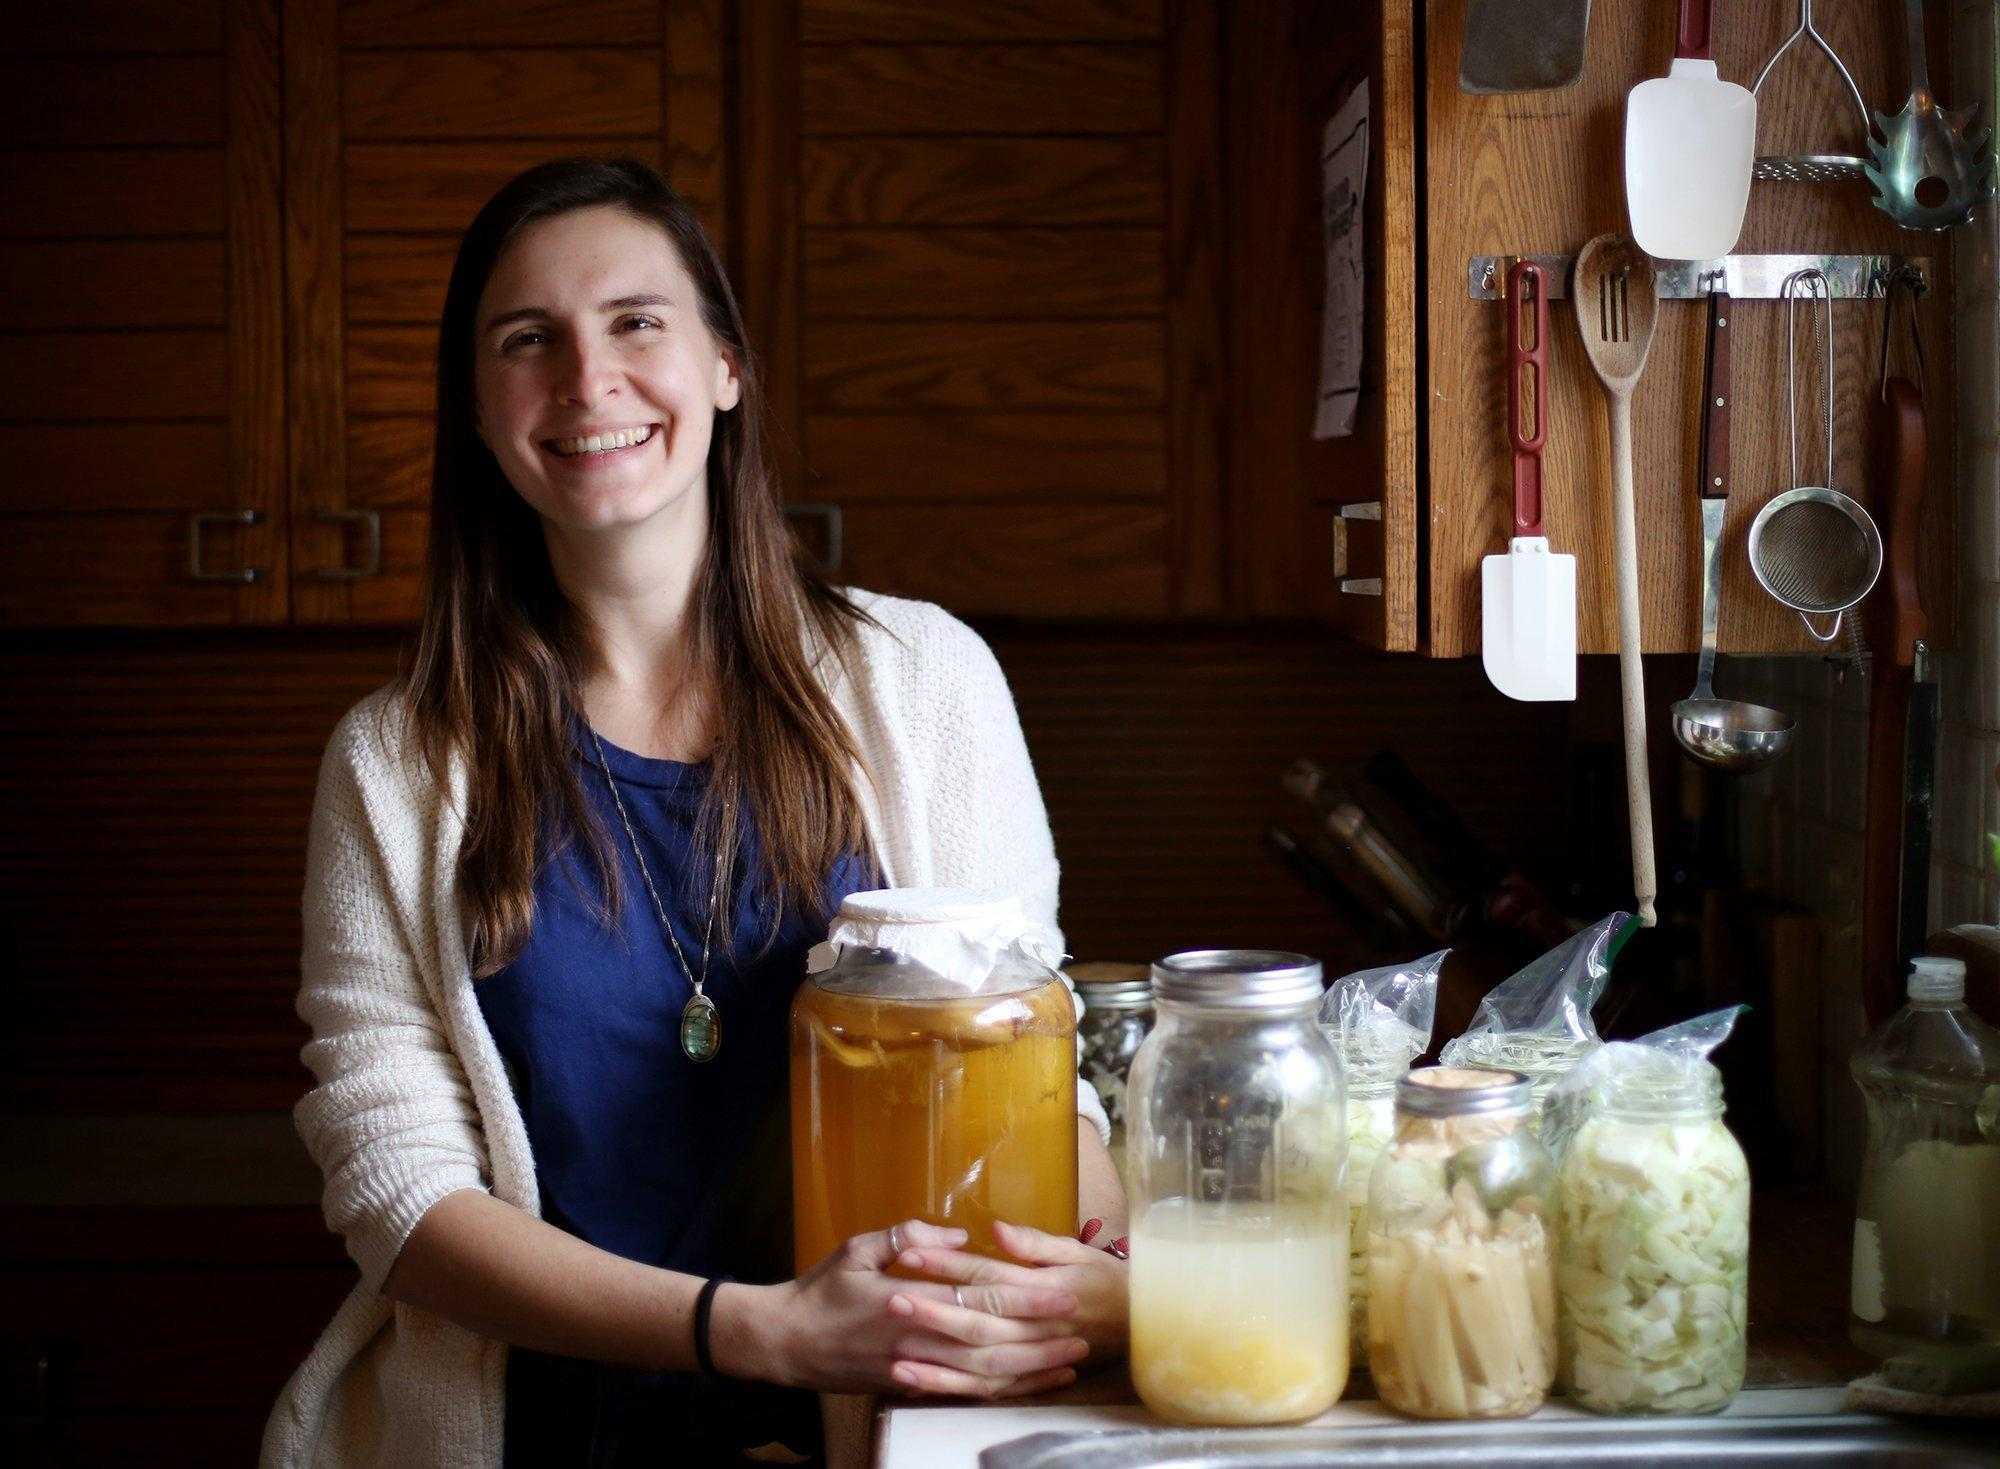 Aniko Zala, a fan of fermented food, owns Wild Origins, a local herbalist business. [Courtney Hergesheimer/The columbus, ohio, dispatch]